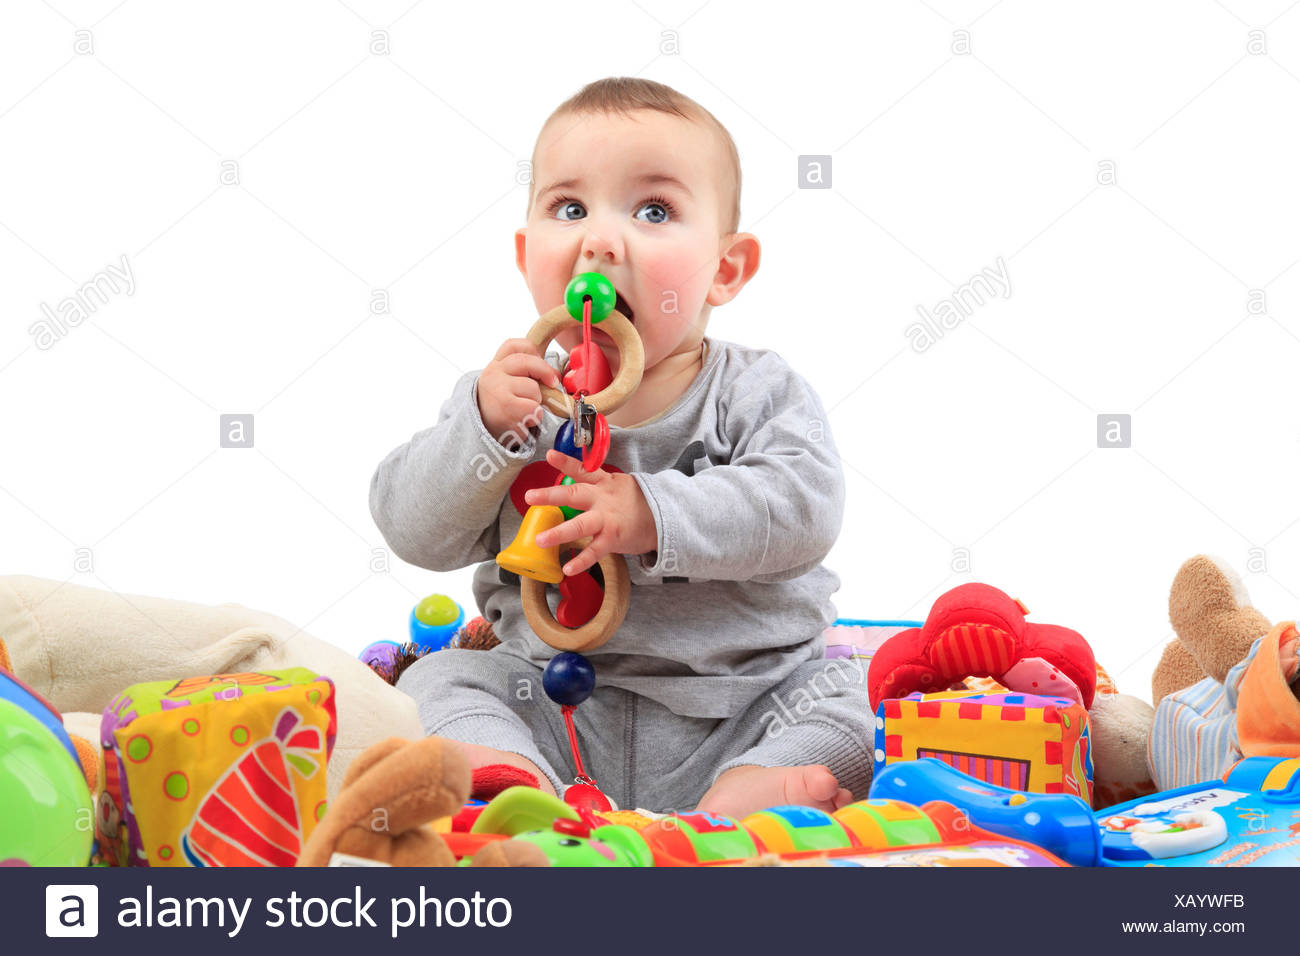 lively baby sitting in playthings and uttering something of  it - Stock Image